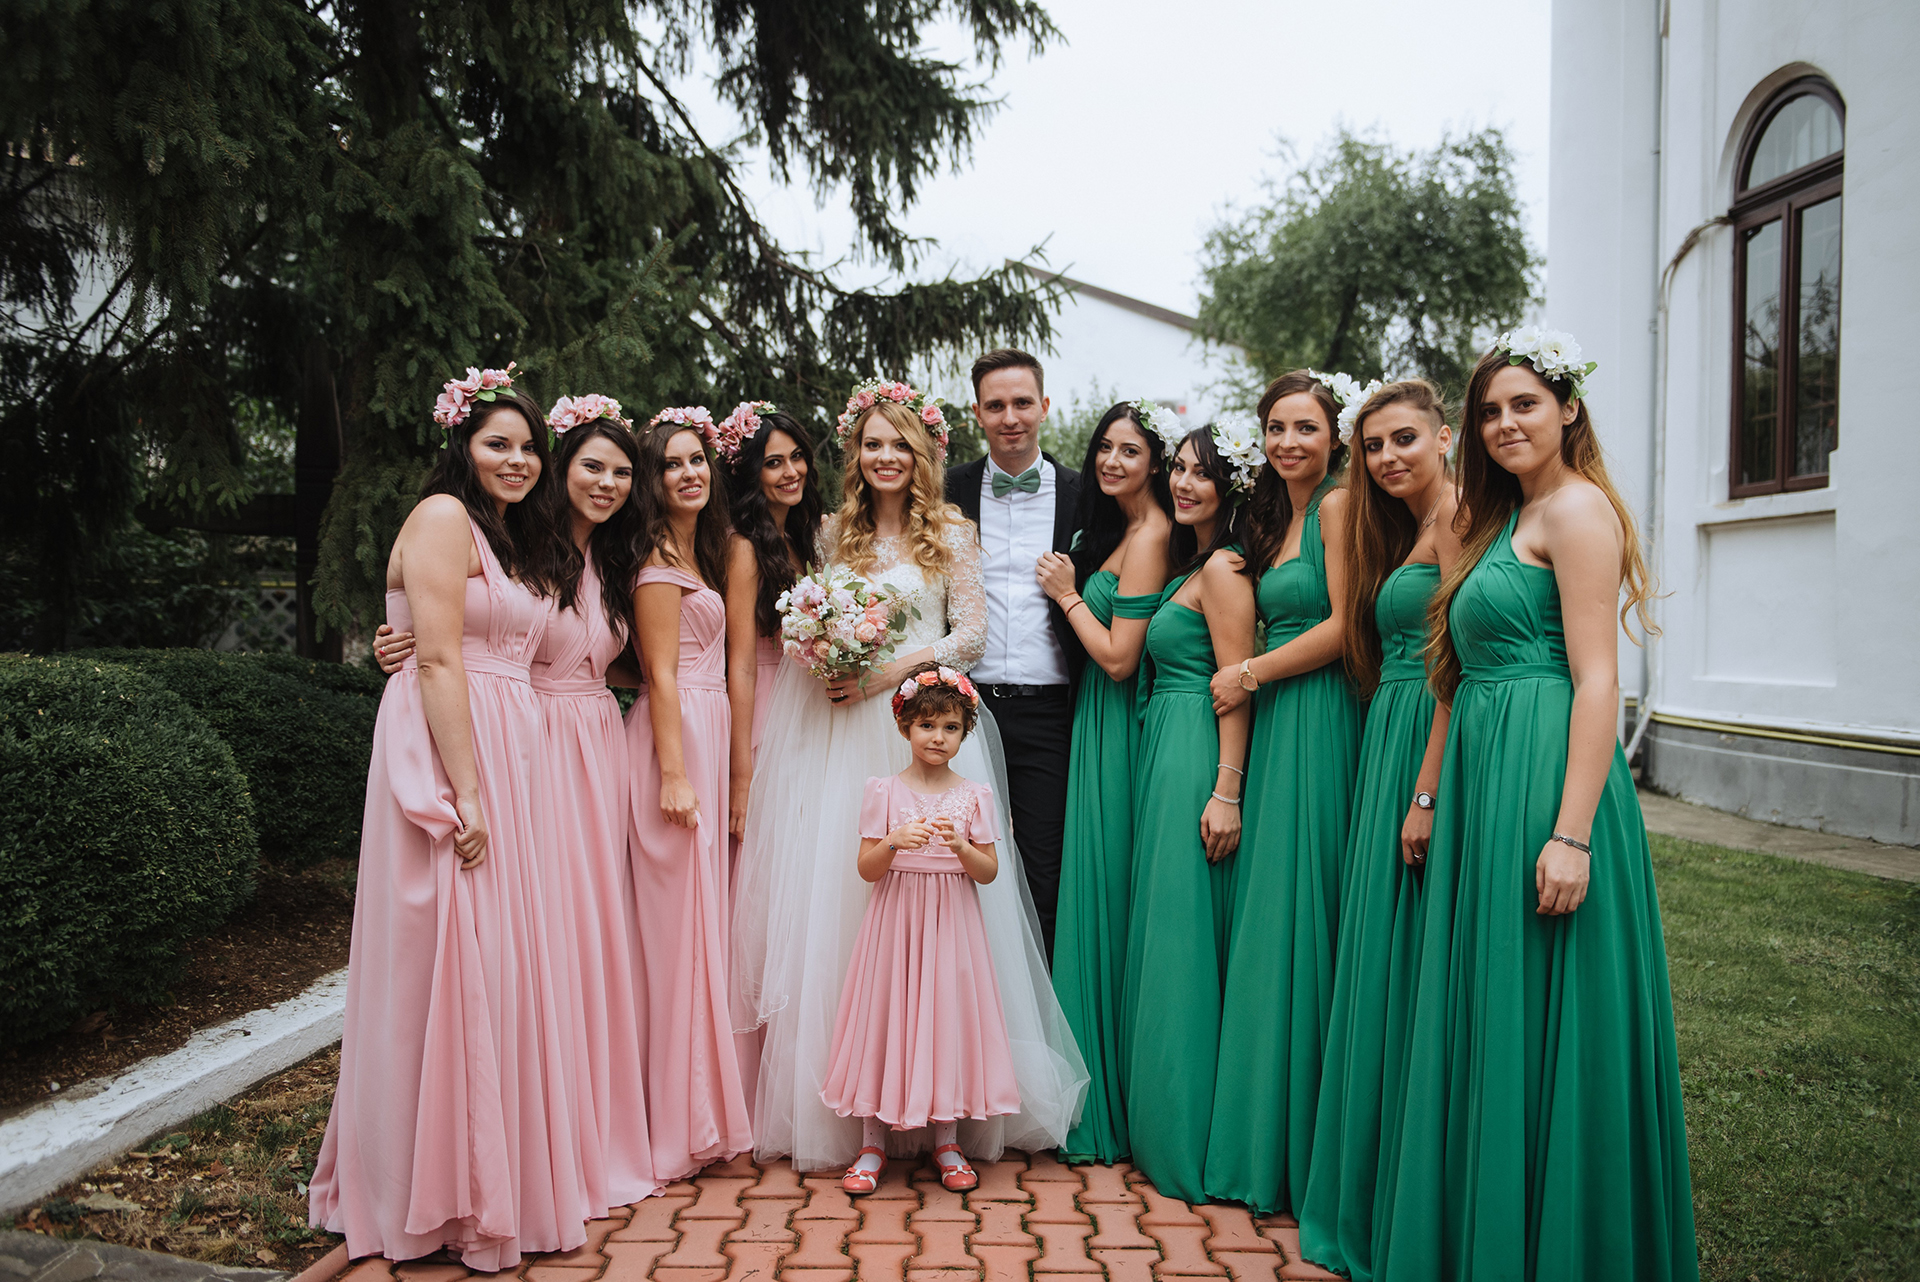 wedding-pink-and-green-bridesmaids-dresses-tulle-and-lace-wedding-dress (7)